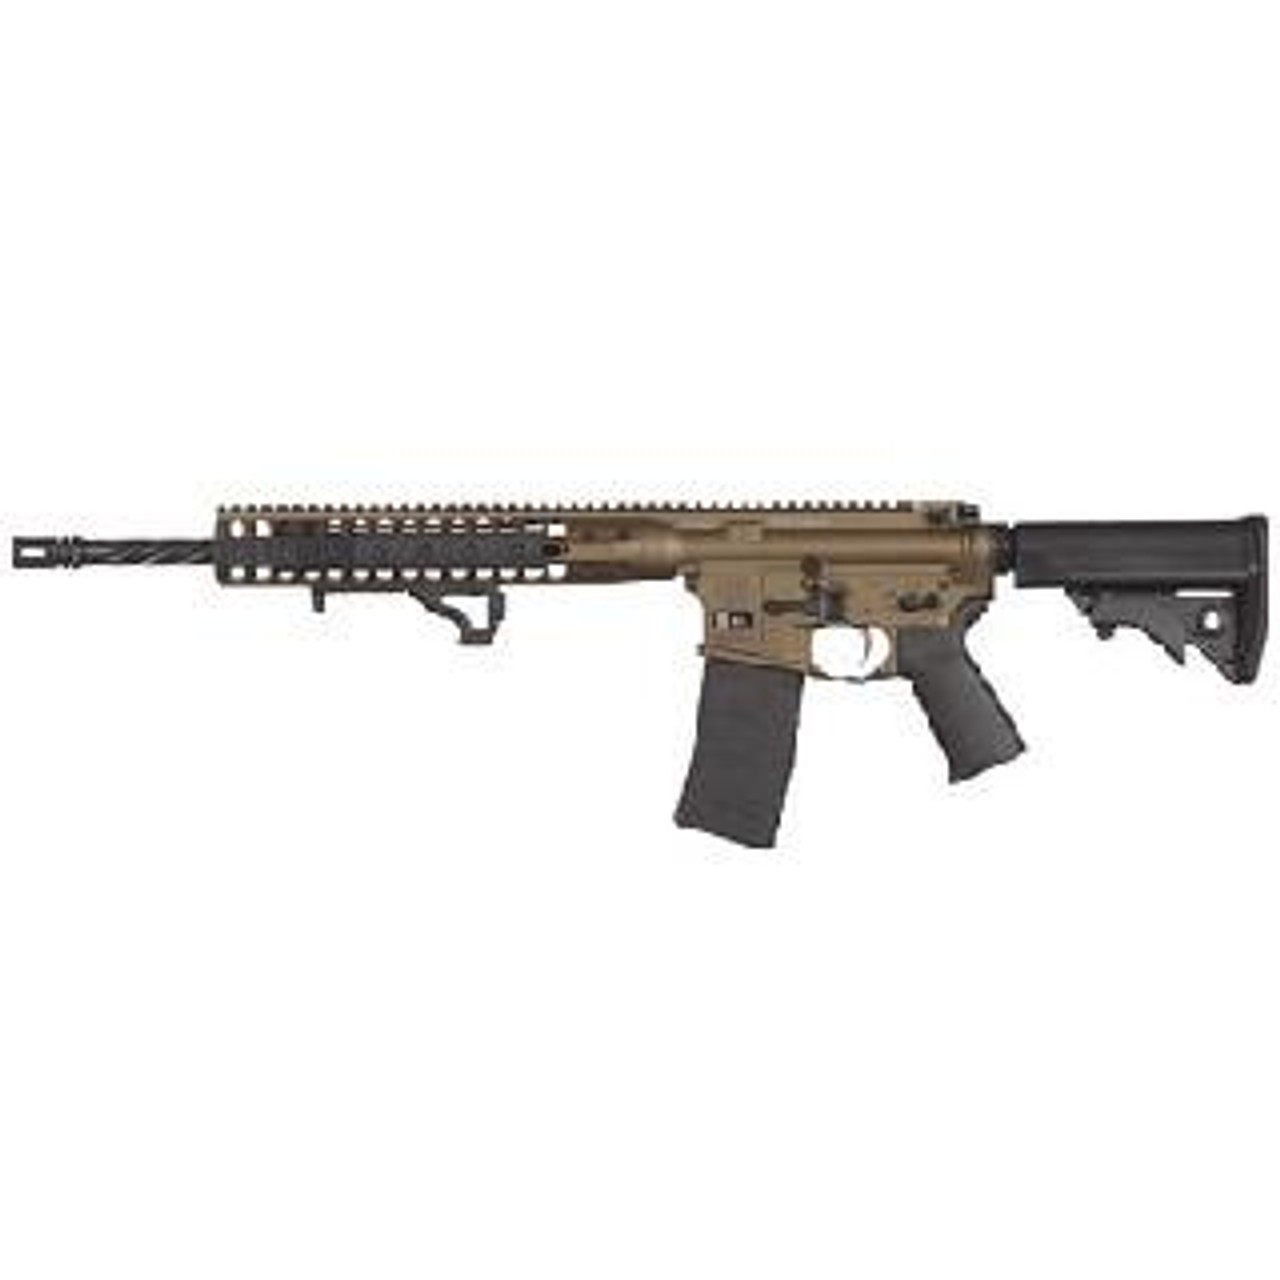 LWRC DI Rifle CALIFORNIA LEGAL 5.56- Burnt Bronze